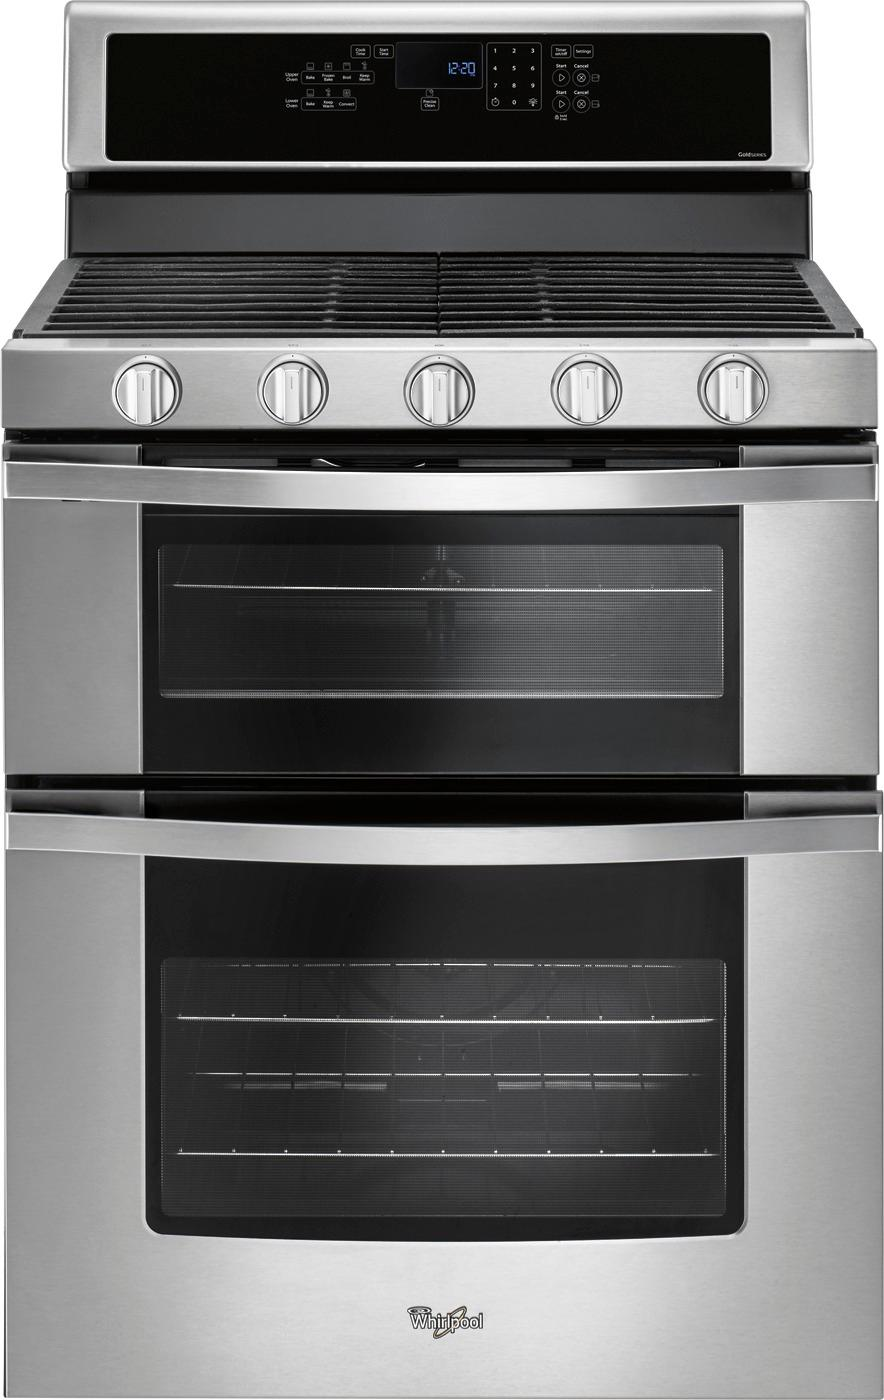 Whirlpool Countertop Stove Whirlpool 6 Cu Ft Self Cleaning Freestanding Double Oven Gas Convection Range Stainless Steel